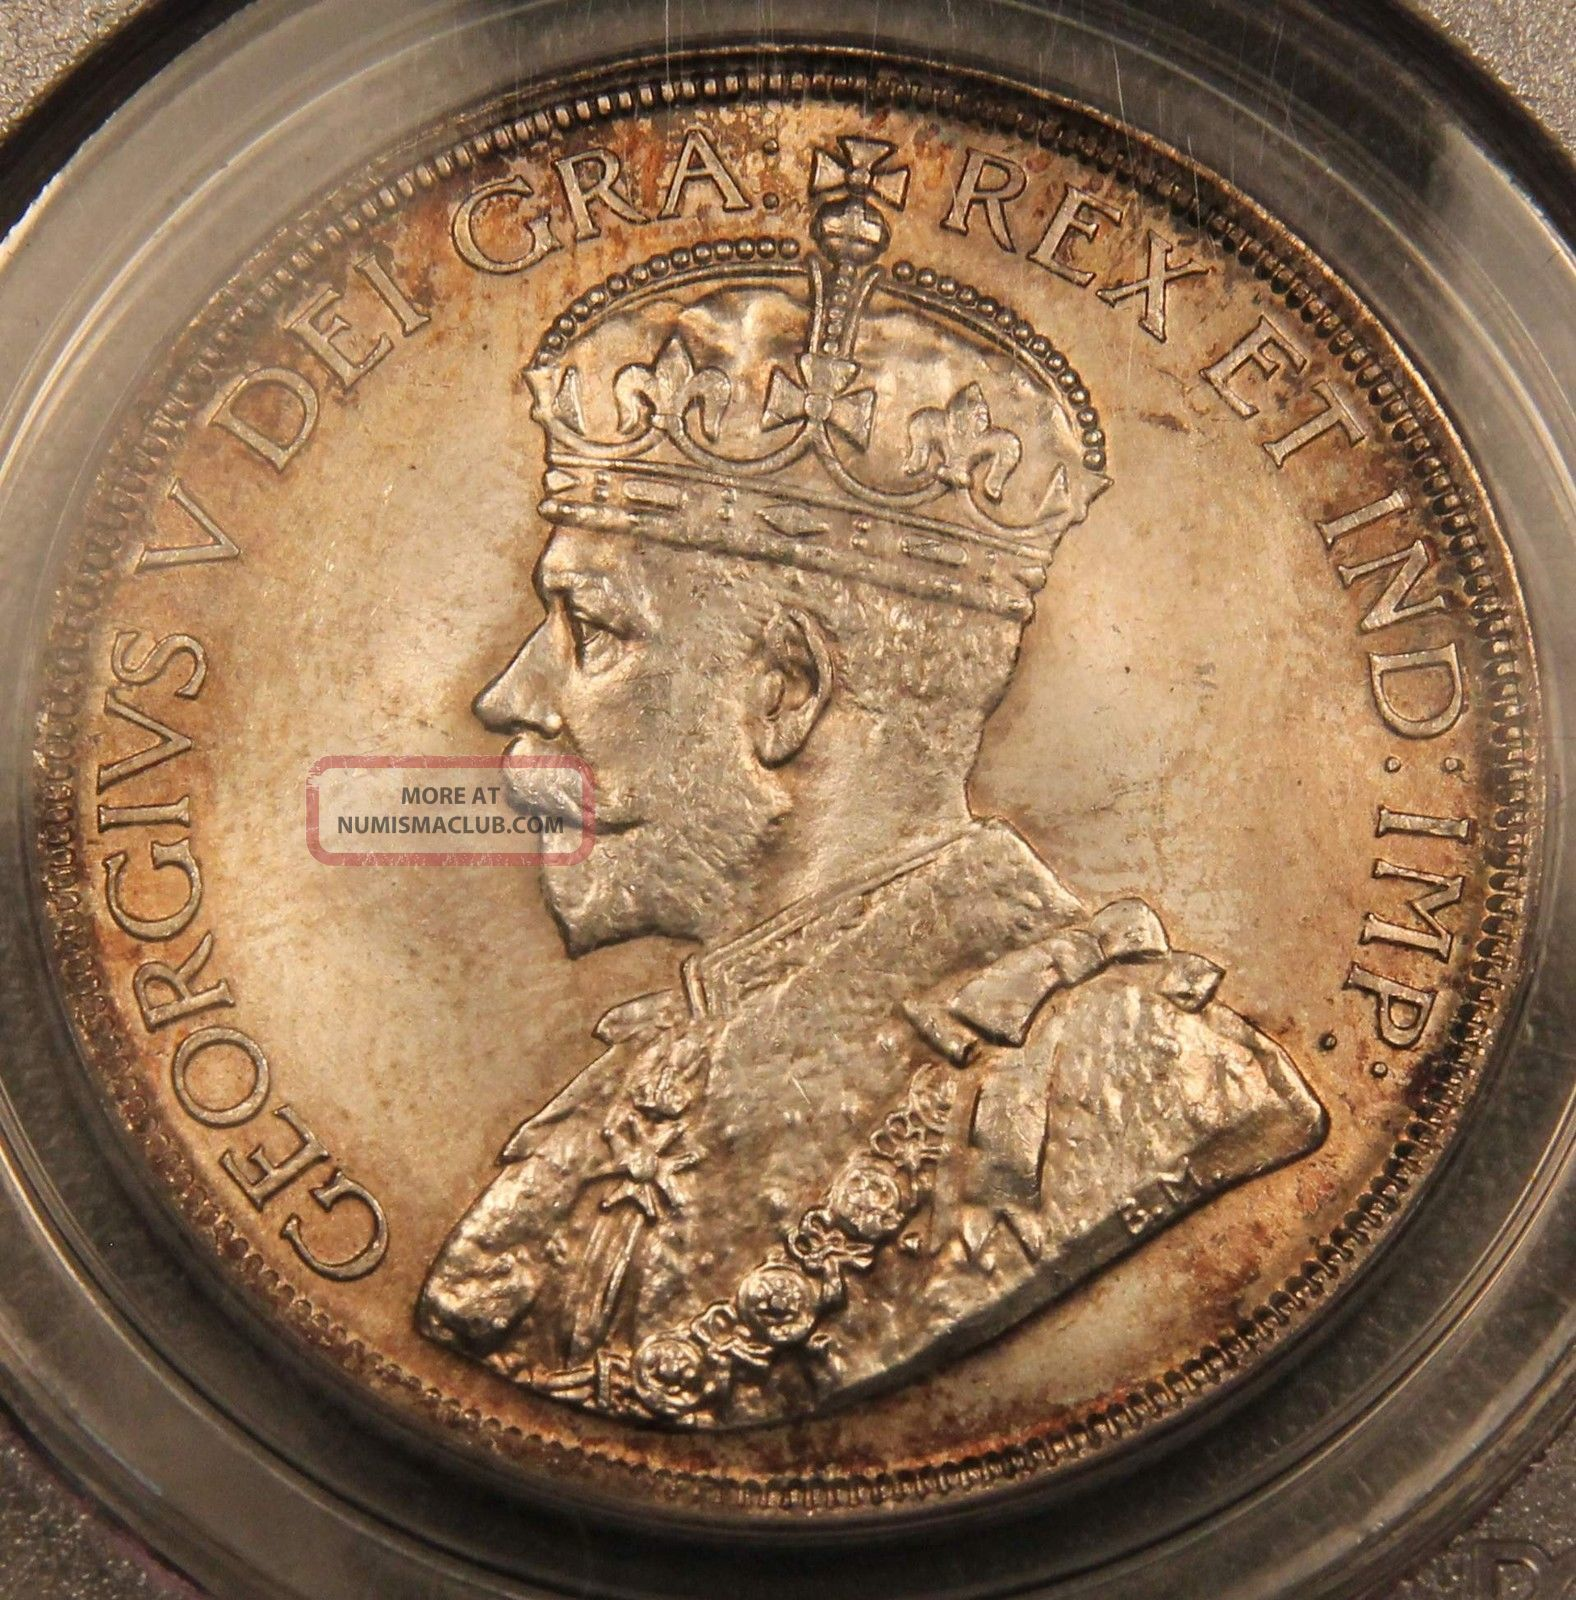 1936 Canada Silver Dollar Ms65 Pcgs - Golden Rim Toning,  Lusterous Coins: Canada photo